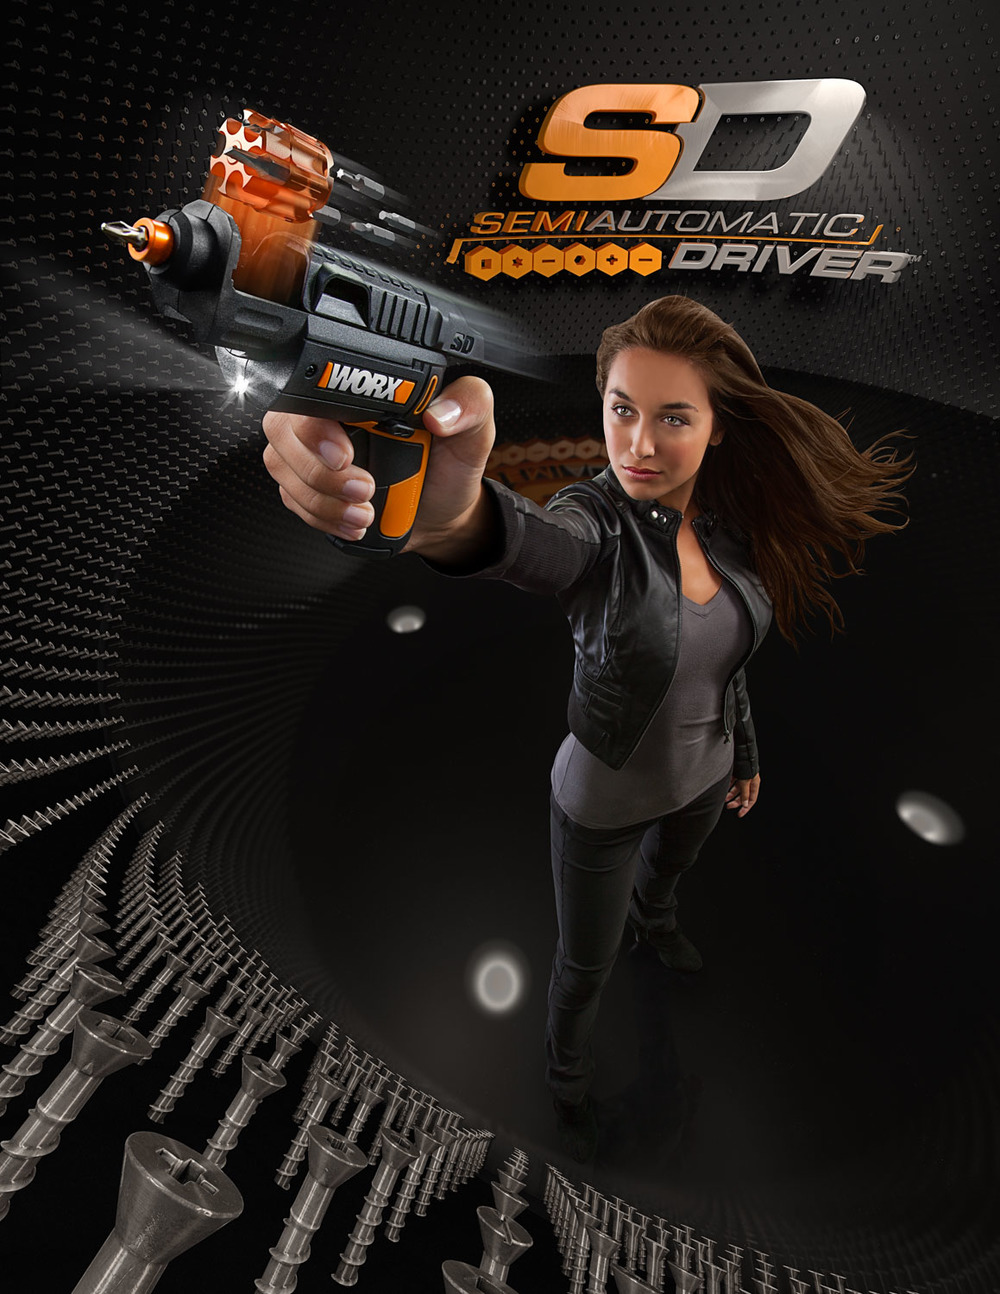 worx ad for positec usa.jpg